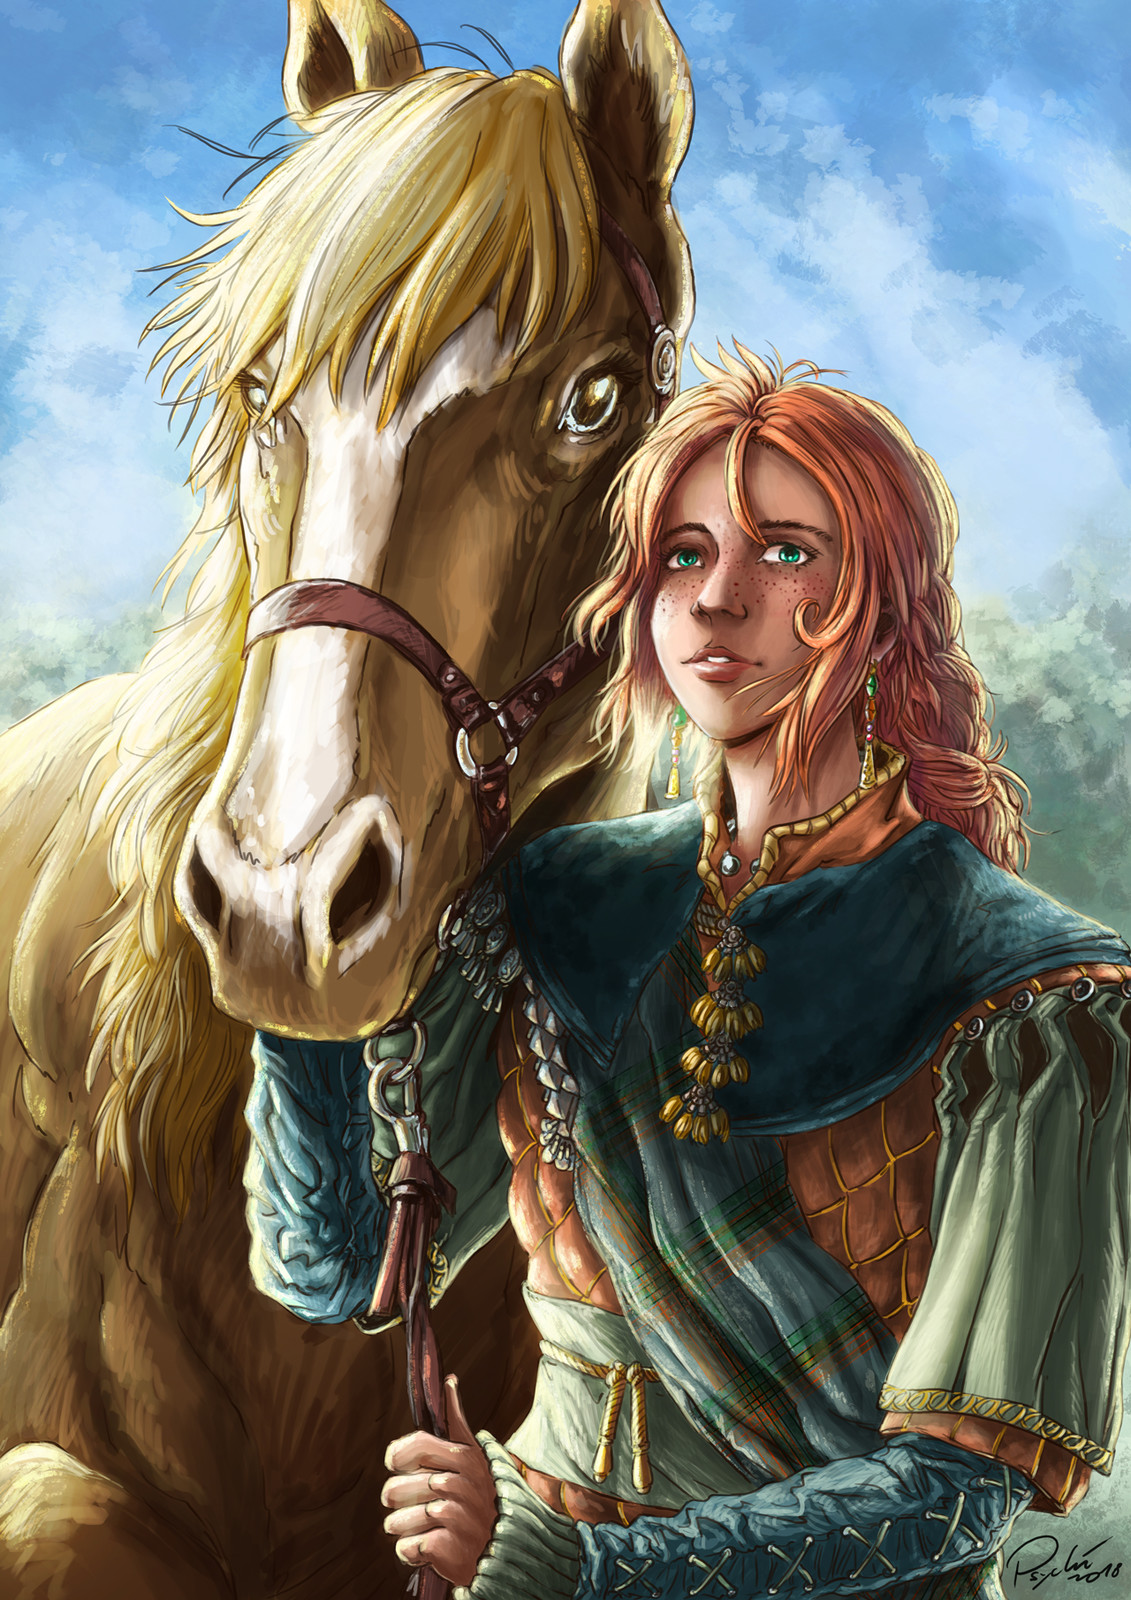 Lisa and horse